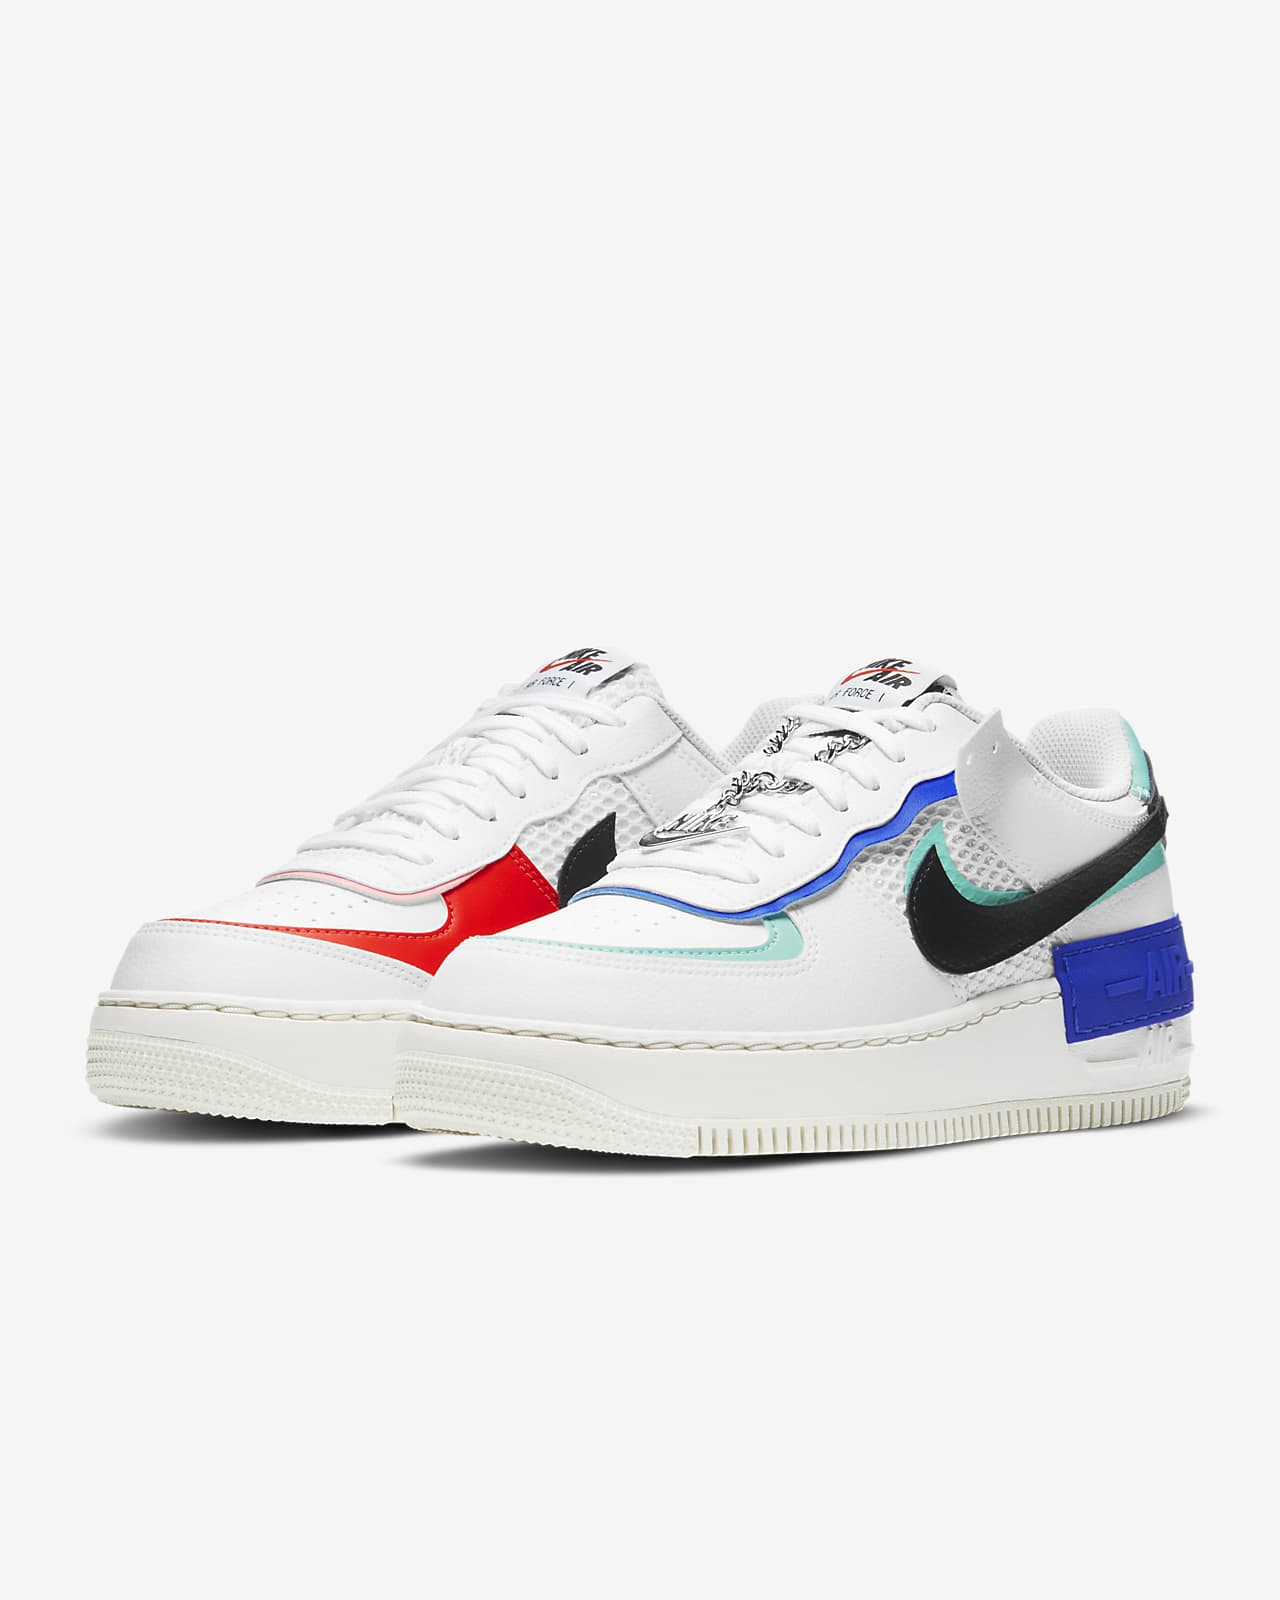 Nike Air Force 1 Shadow Women S Shoe Nike Com Dual nike air branding on the heel. nike air force 1 shadow women s shoe